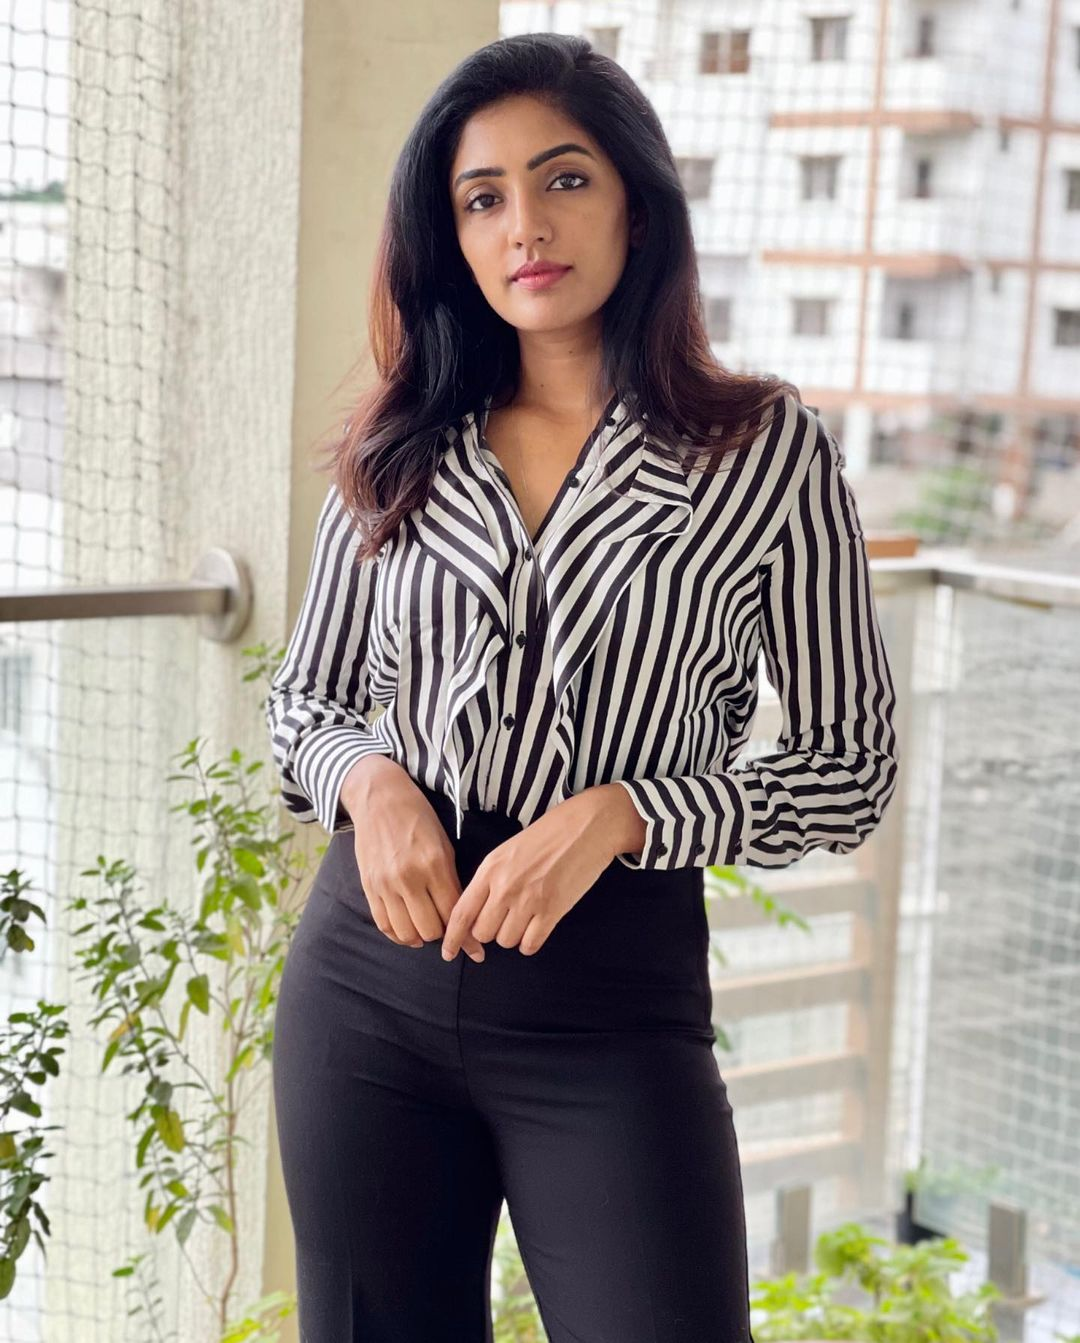 Stunning actress Eesha Rebba in striped shirt and bottom pants. 2021-07-14